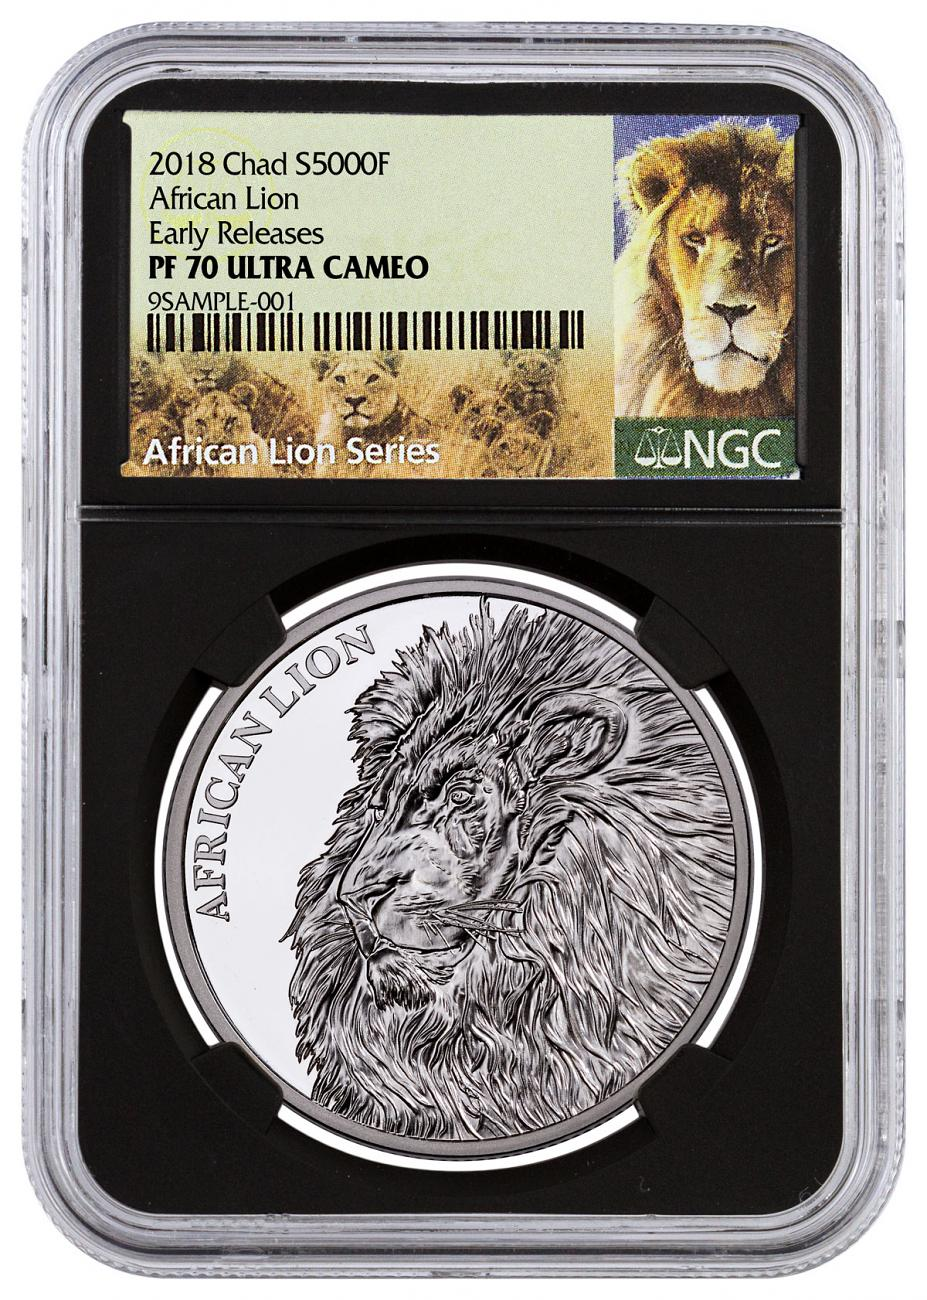 2018 Republic of Chad African Lion 1 oz Silver Proof Fr5,000 Coin NGC PF70 UC ER Black Core Holder Exclusive Lion Label